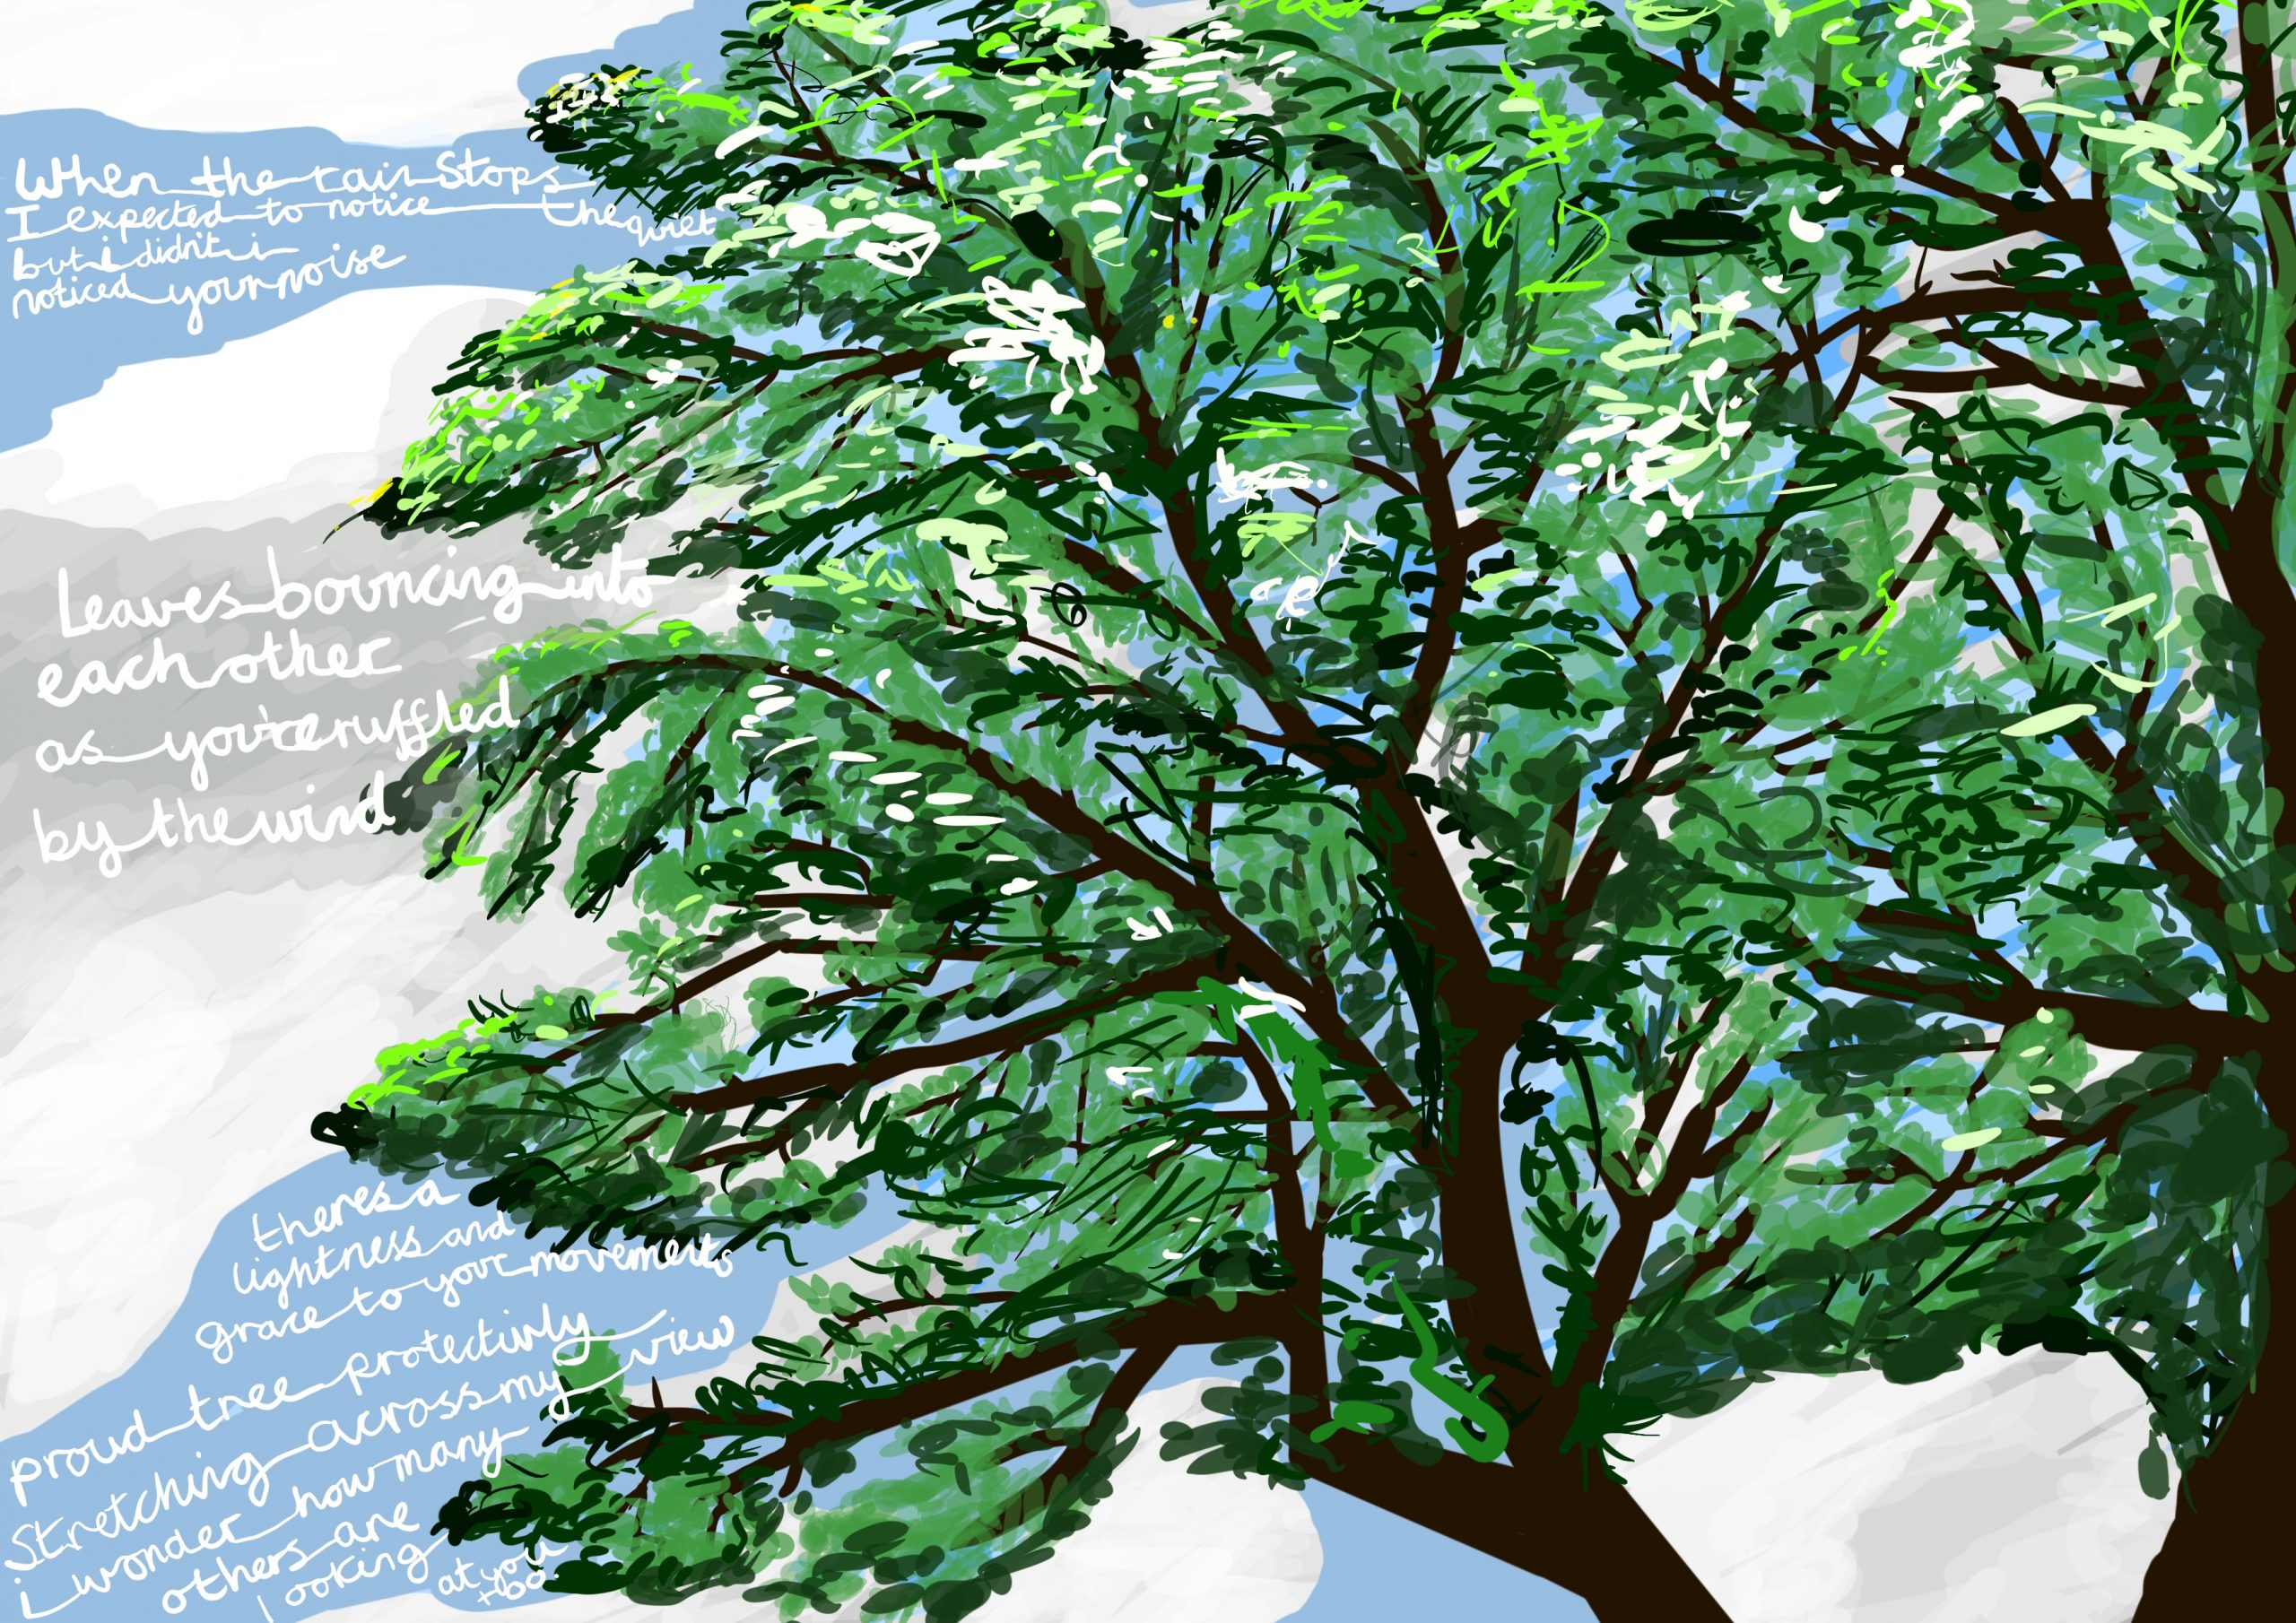 """Image shows a digital drawing by Touretteshero of one of the sycamore trees she can see from her bedroom window. The sycamore tree is a lush early summer green and the sky is cloudy with patches of blue. It is raining heavily with the following accompanying text: """"When the rain stops, I expected to notice the quiet, but I didn't, I noticed your noise. Leaves bouncing off each other as you're ruffled by the wind."""""""